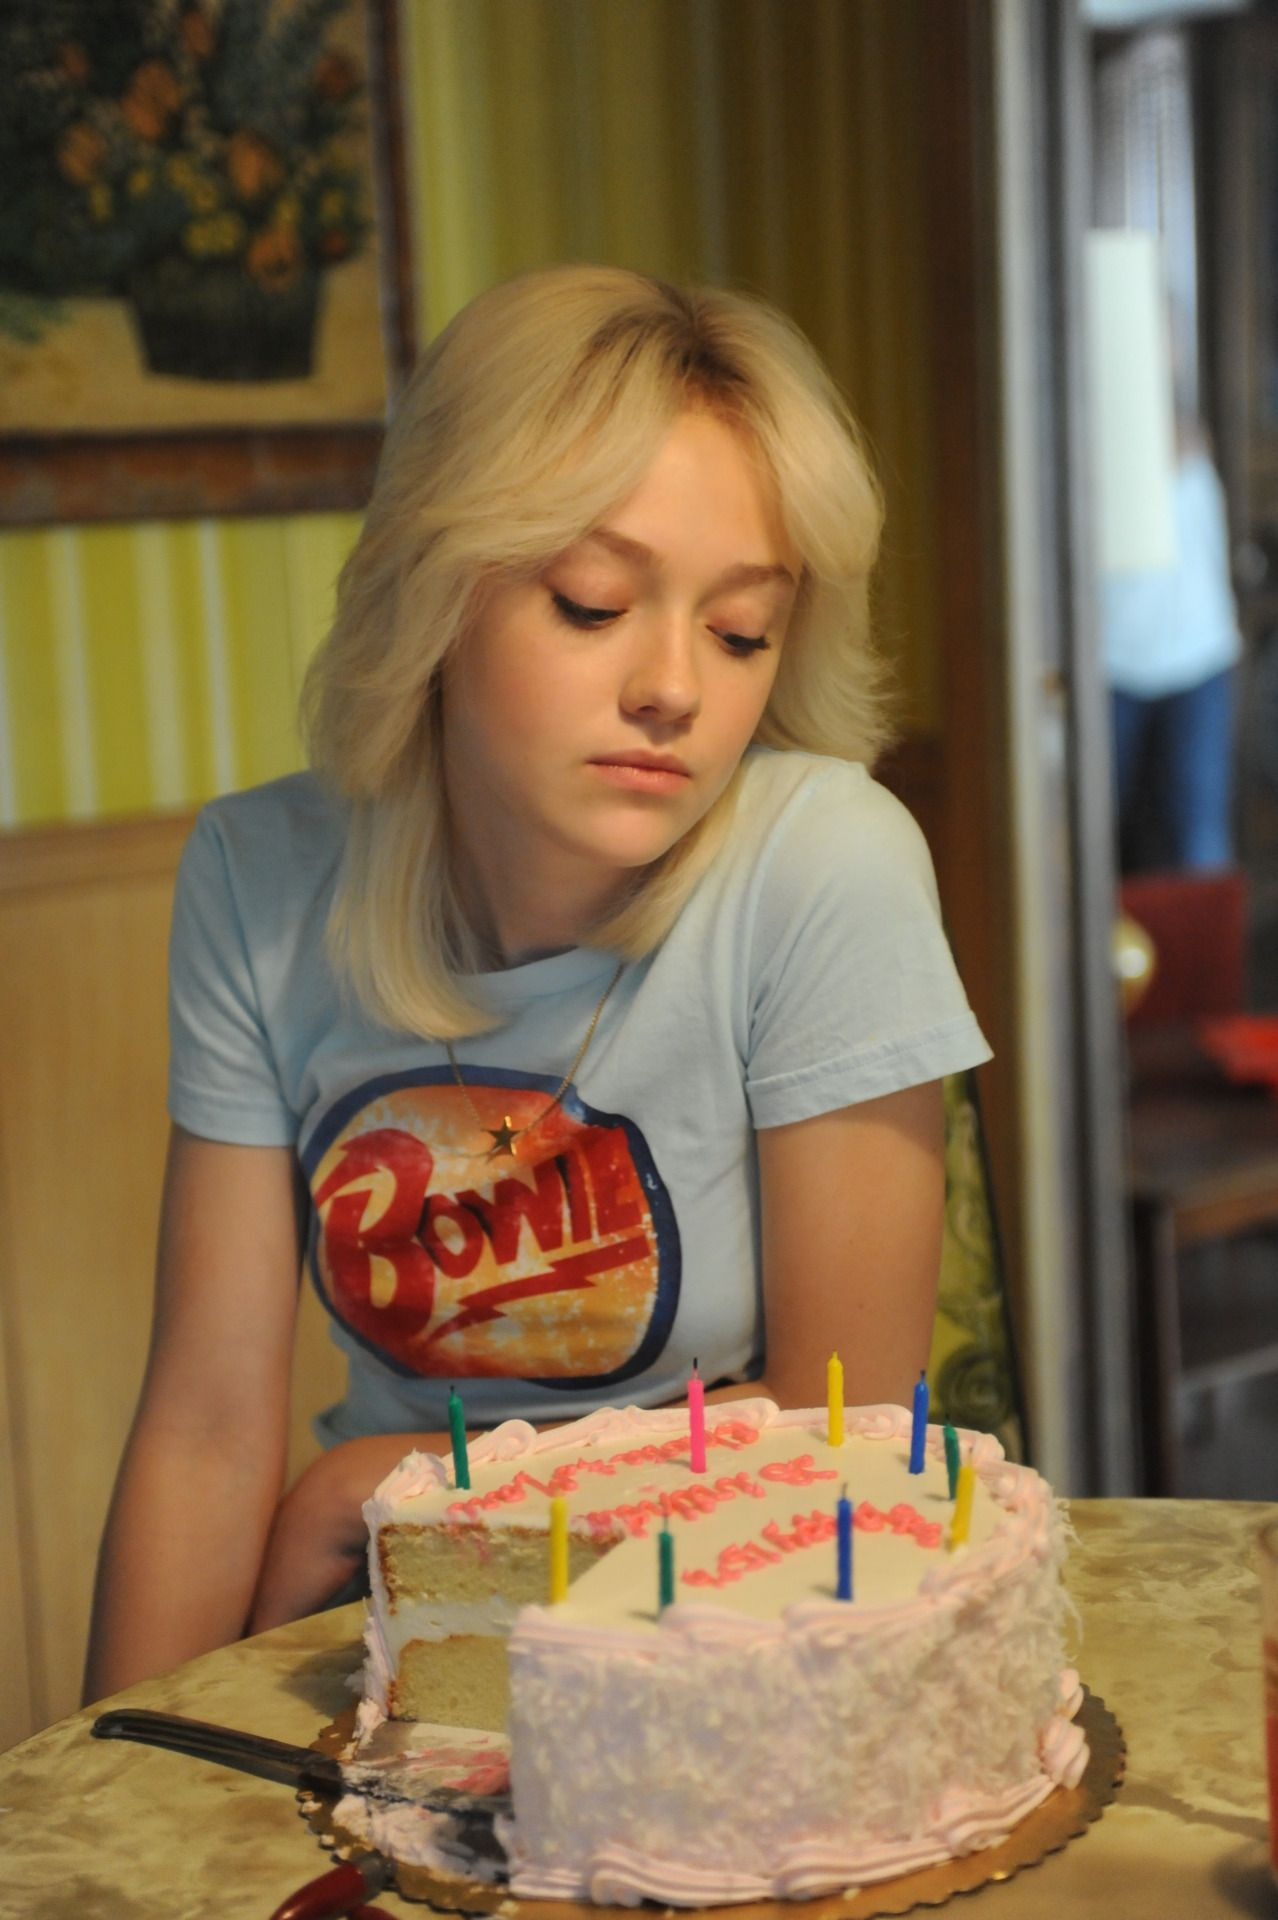 Dakota Fanning As Cherie Currie The Runaways 2010 Dakota